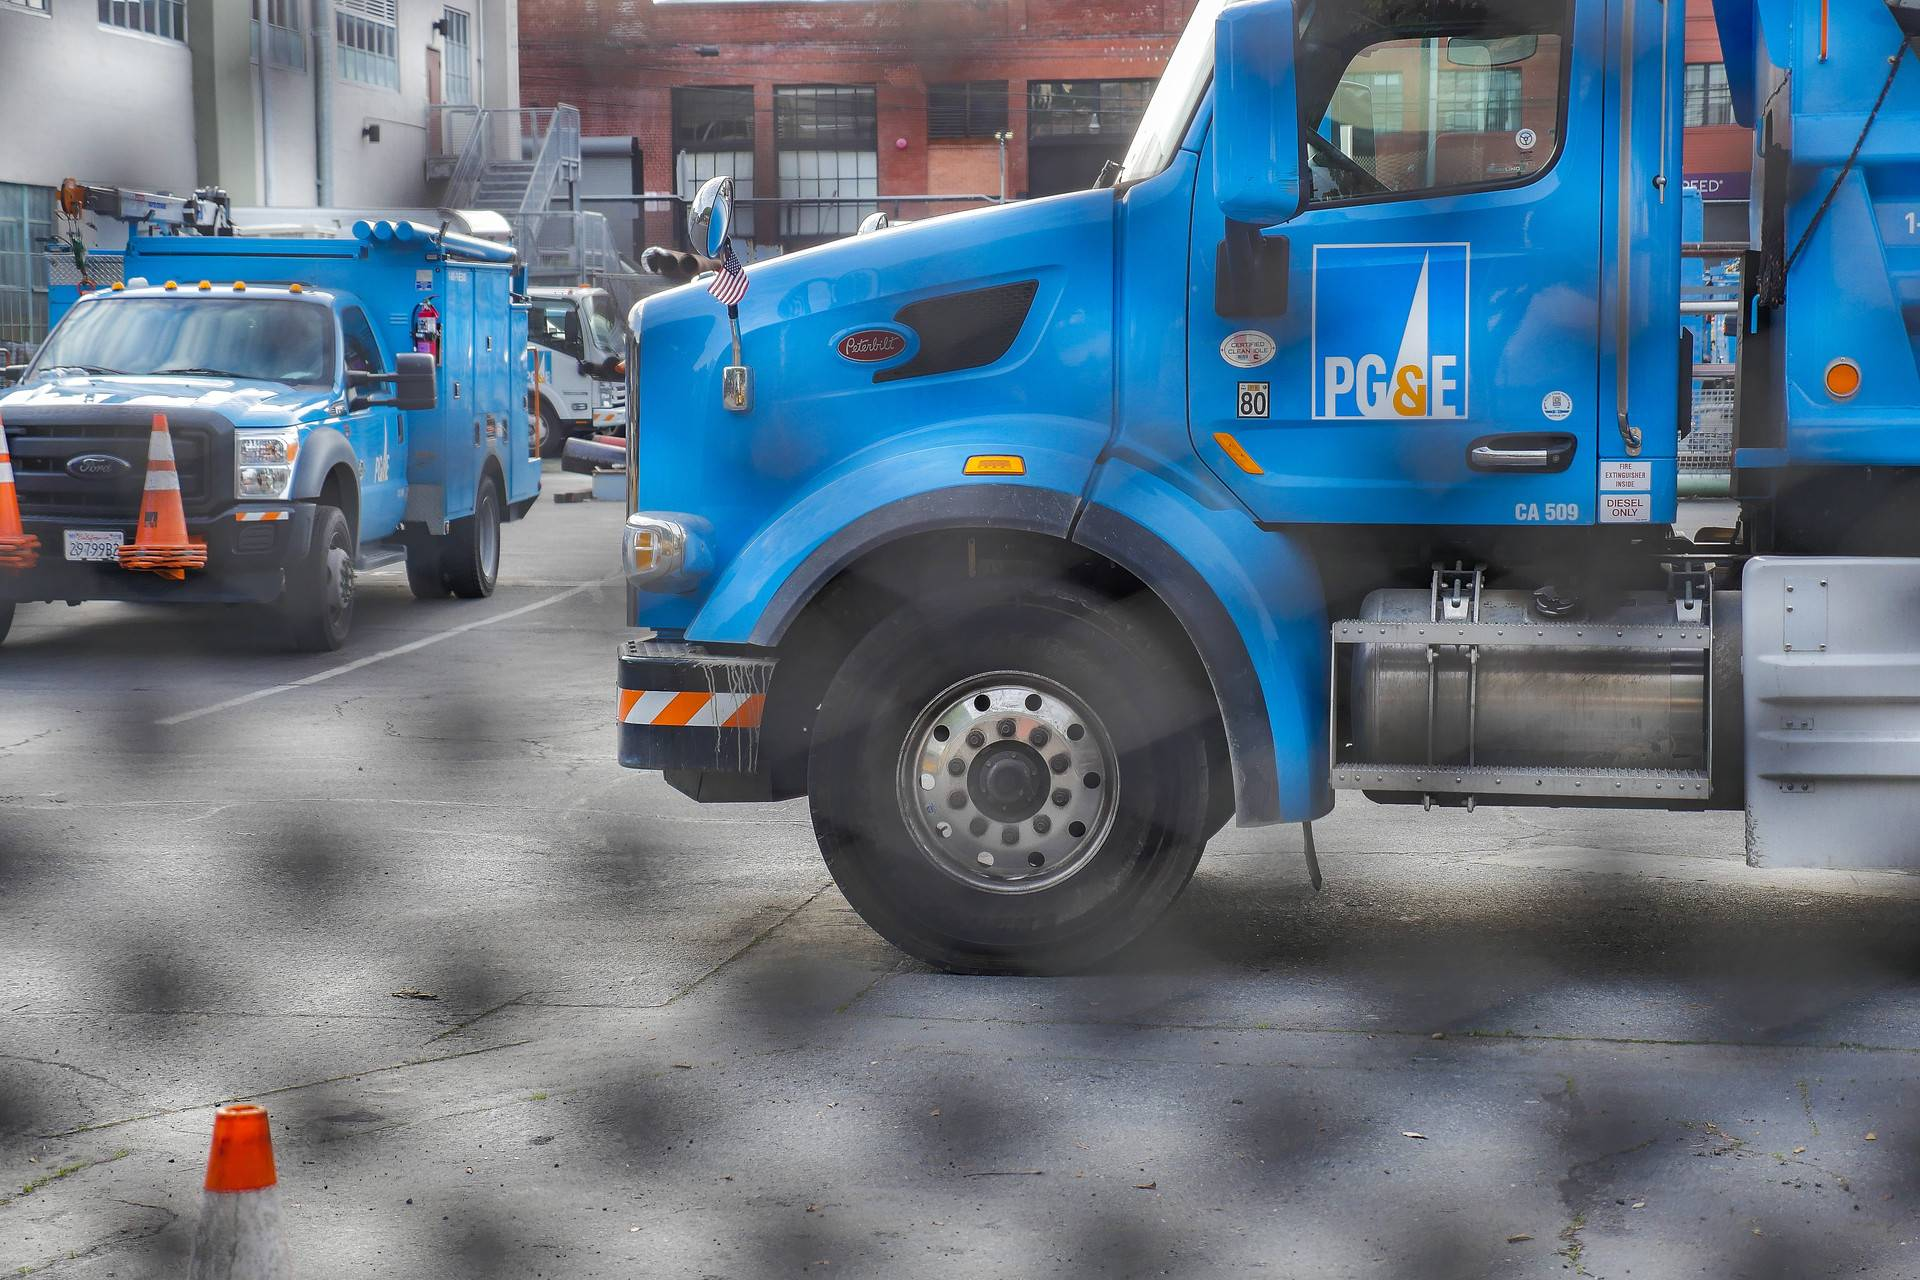 'If there ever was a corporation that deserved to go to prison, it is PG&E,' said U.S. District Judge William Alsup on Thursday. Sheraz Sadiq/KQED